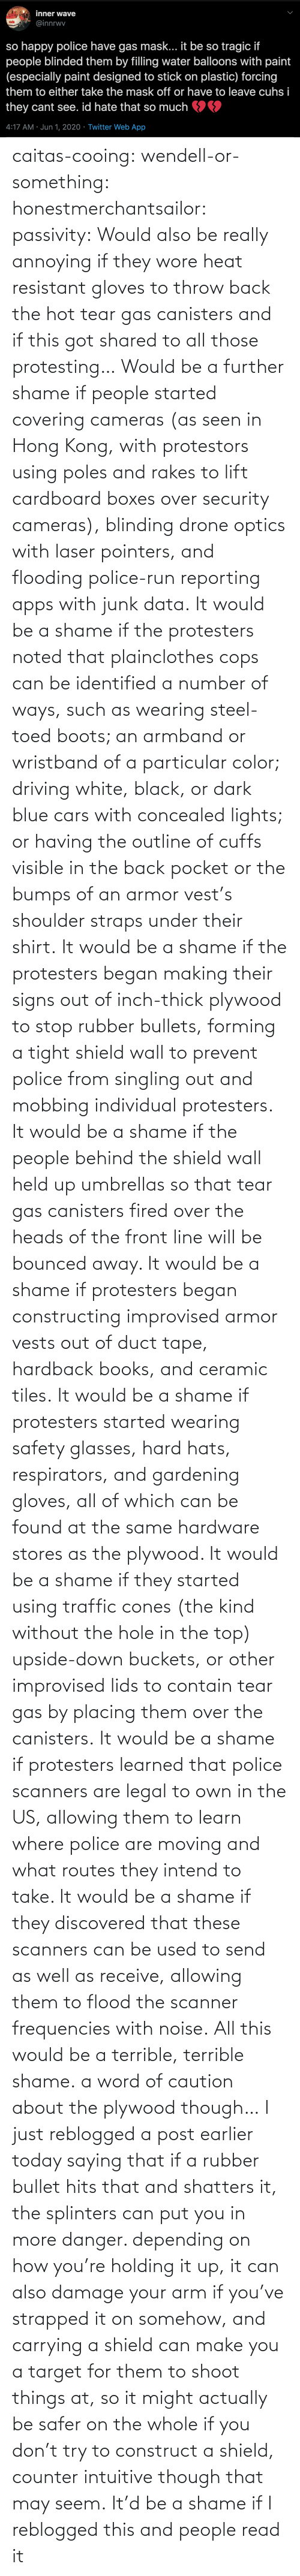 Glasses: caitas-cooing:  wendell-or-something: honestmerchantsailor:  passivity: Would also be really annoying if they wore heat resistant gloves to throw back the hot tear gas canisters and if this got shared to all those protesting… Would be a further shame if people started covering cameras (as seen in Hong Kong, with protestors using poles and rakes to lift cardboard boxes over security cameras), blinding drone optics with laser pointers, and flooding police-run reporting apps with junk data. It would be a shame if the protesters noted that plainclothes cops can be identified a number of ways, such as wearing steel-toed boots; an armband or wristband of a particular color; driving white, black, or dark blue cars with concealed lights; or having the outline of cuffs visible in the back pocket or the bumps of an armor vest's shoulder straps under their shirt. It would be a shame if the protesters began making their signs out of inch-thick plywood to stop rubber bullets, forming a tight shield wall to prevent police from singling out and mobbing individual protesters. It would be a shame if the people behind the shield wall held up umbrellas so that tear gas canisters fired over the heads of the front line will be bounced away. It would be a shame if protesters began constructing improvised armor vests out of duct tape, hardback books, and ceramic tiles. It would be a shame if protesters started wearing safety glasses, hard hats, respirators, and gardening gloves, all of which can be found at the same hardware stores as the plywood. It would be a shame if they started using traffic cones (the kind without the hole in the top) upside-down buckets, or other improvised lids to contain tear gas by placing them over the canisters. It would be a shame if protesters learned that police scanners are legal to own in the US, allowing them to learn where police are moving and what routes they intend to take. It would be a shame if they discovered that these scanners can be used to send as well as receive, allowing them to flood the scanner frequencies with noise. All this would be a terrible, terrible shame.    a word of caution about the plywood though… I just reblogged a post earlier today saying that if a rubber bullet hits that and shatters it, the splinters can put you in more danger. depending on how you're holding it up, it can also damage your arm if you've strapped it on somehow, and carrying a shield can make you a target for them to shoot things at, so it might actually be safer on the whole if you don't try to construct a shield, counter intuitive though that may seem.    It'd be a shame if I reblogged this and people read it